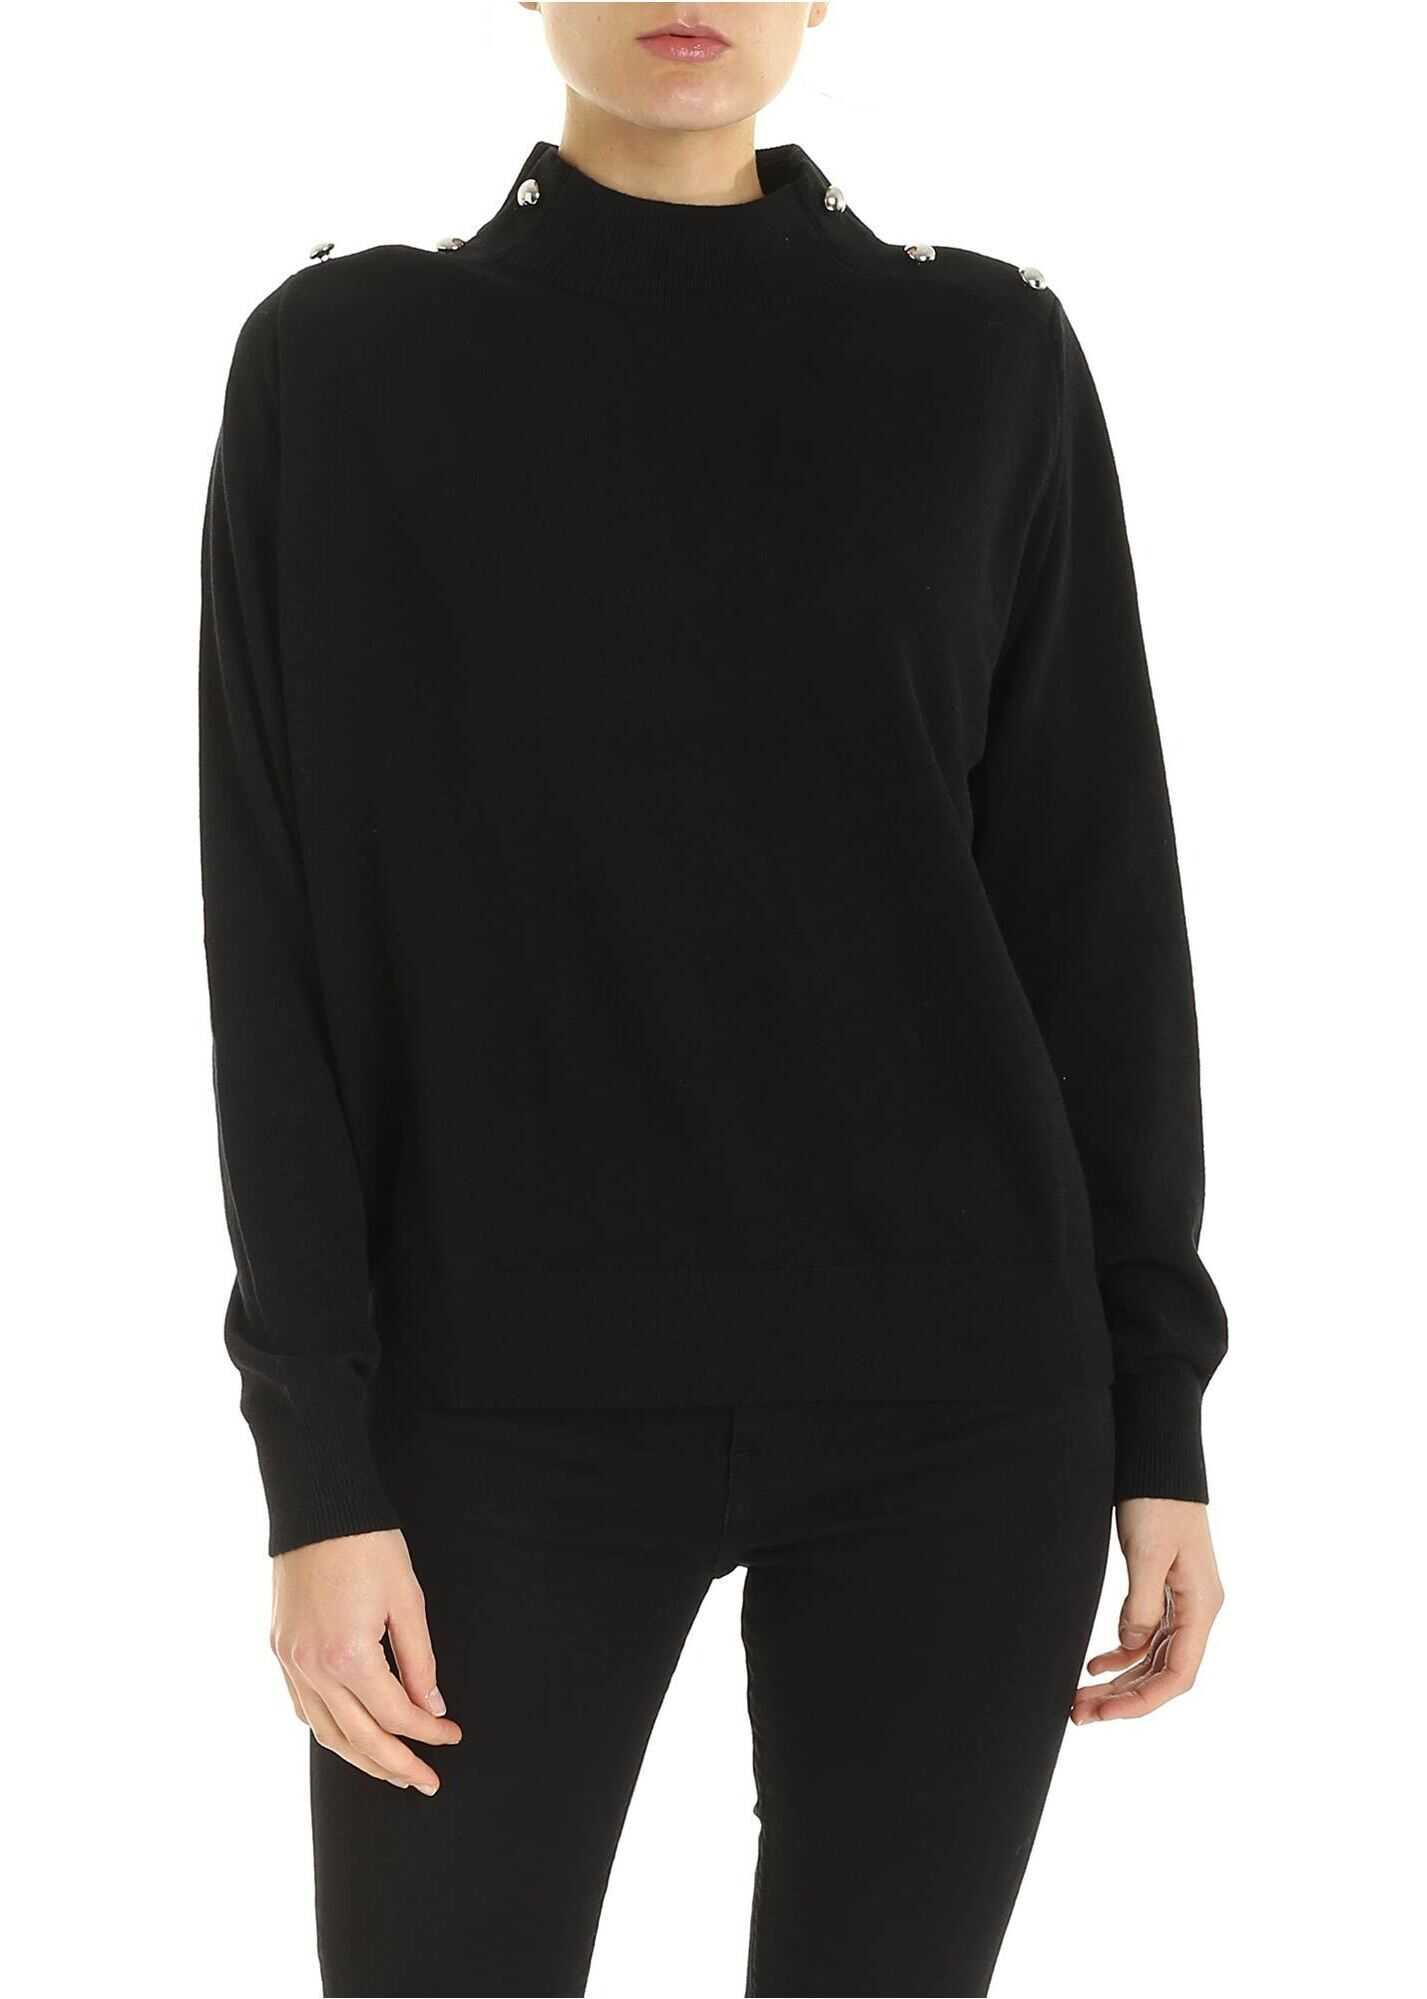 Michael Kors Turtleneck Pullover In Black Black